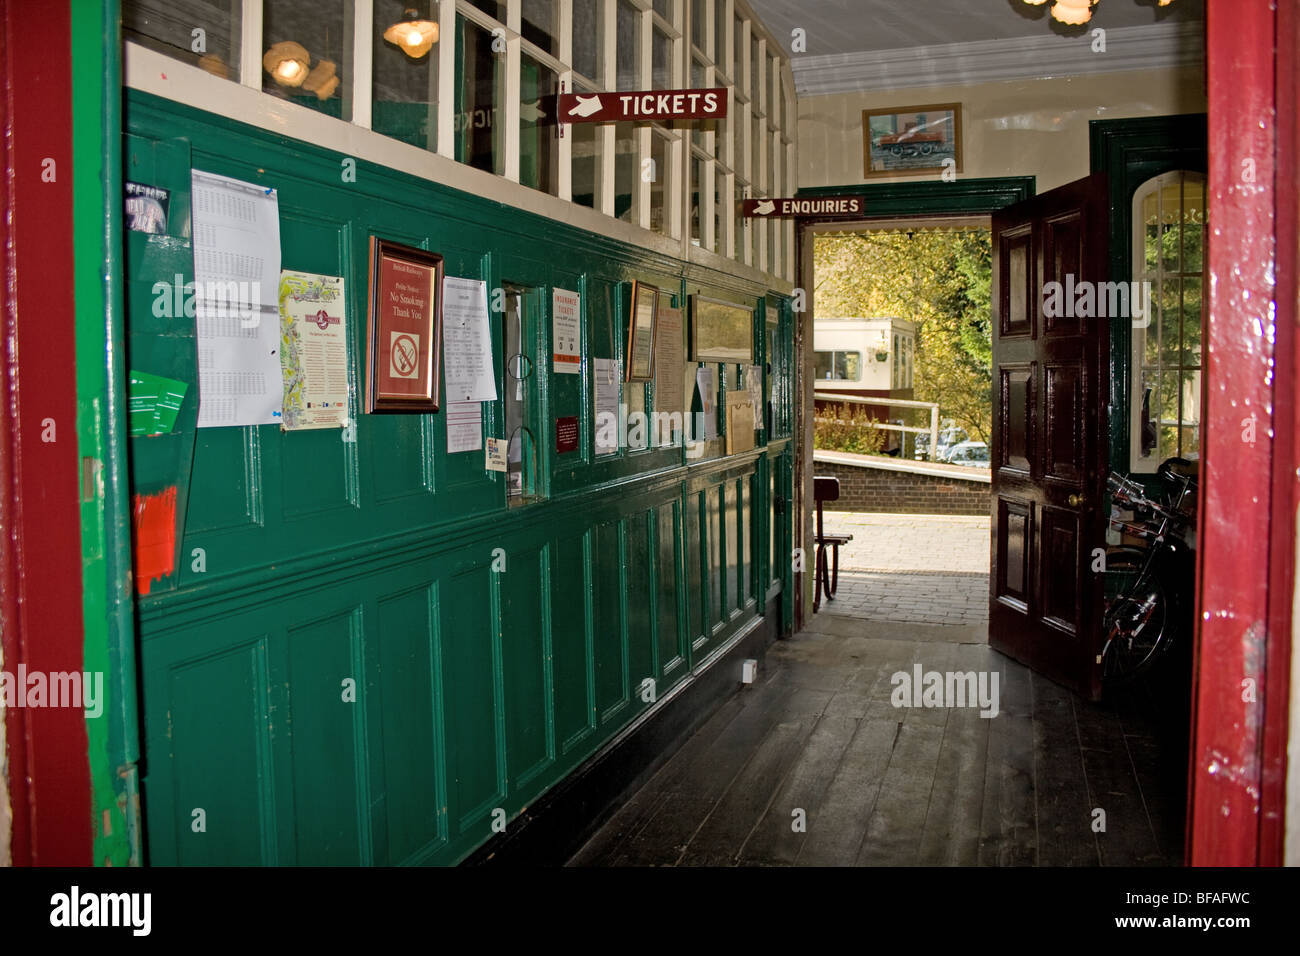 Booking Office at Cheddleton Railway Station - Stock Image